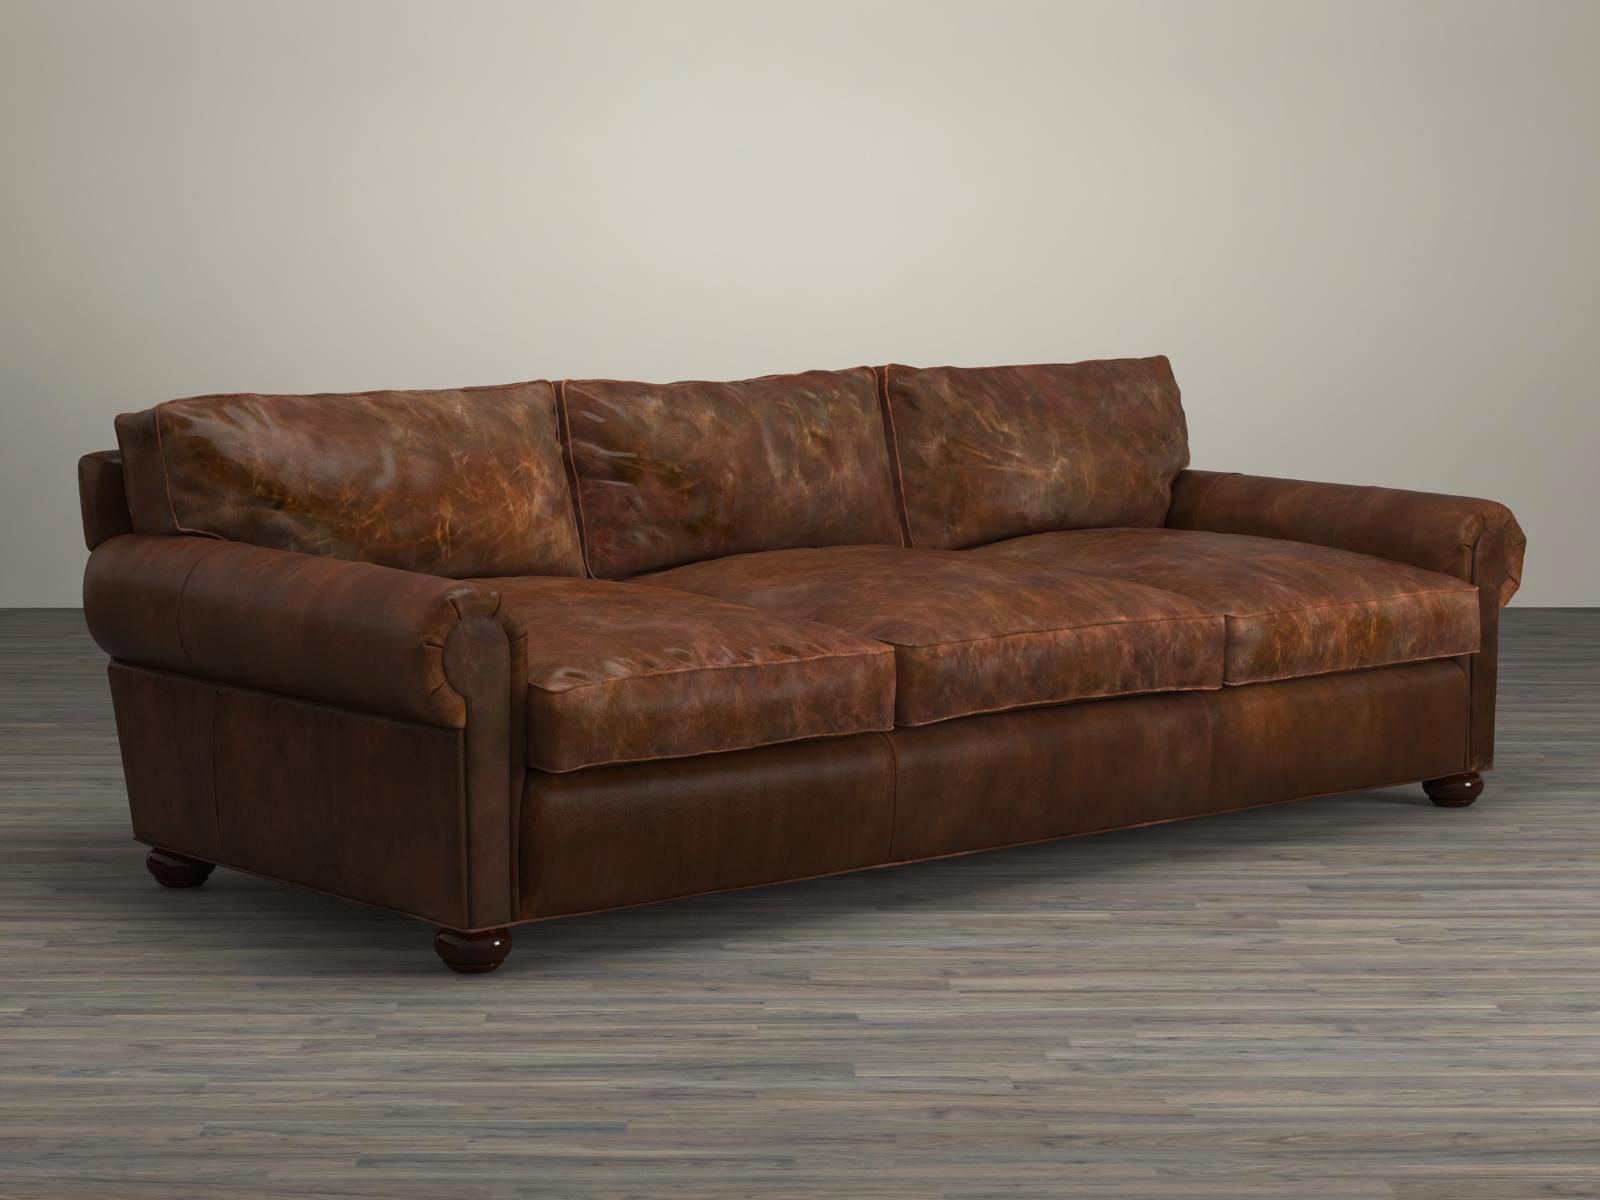 96 Lancaster Leather Sofa 3d Model Ad Lancaster Quot Model Sofa Leather Sofa Sofa Leather Living Room Furniture